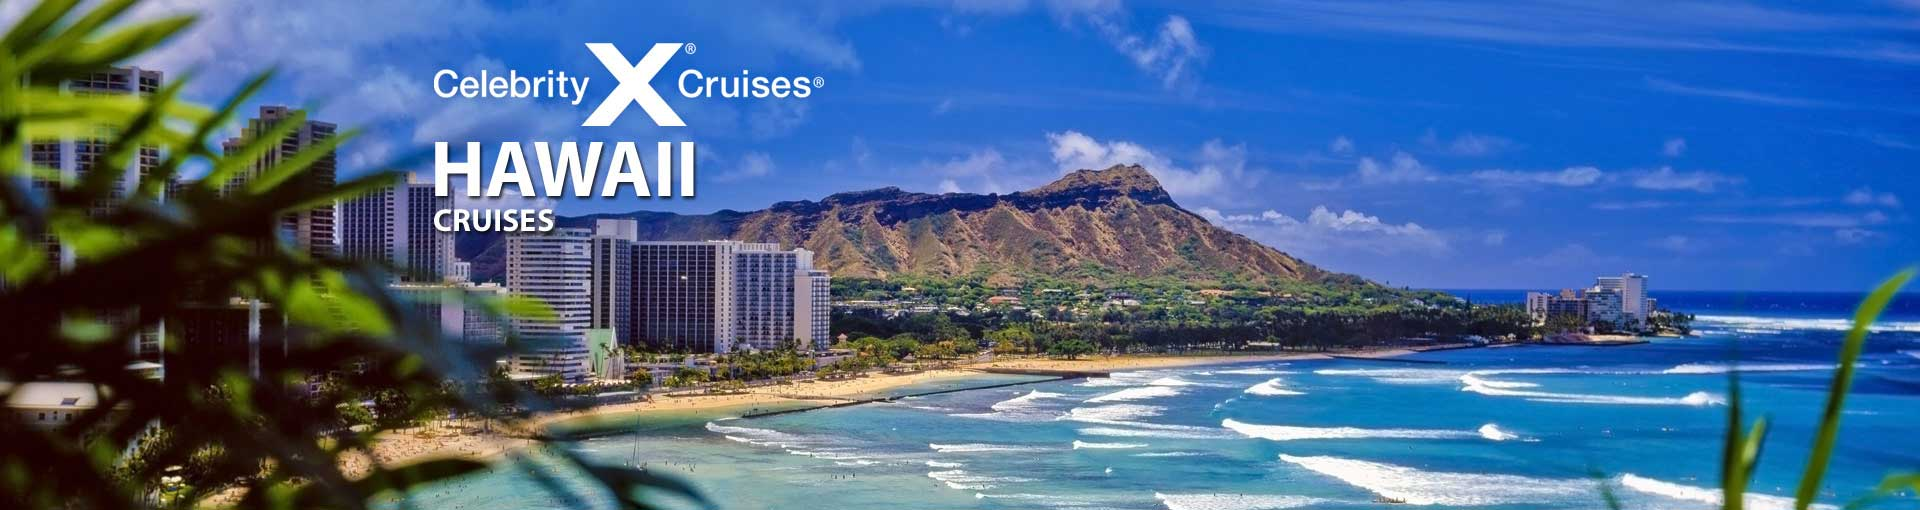 Celebrity Cruises Hawaii Cruises